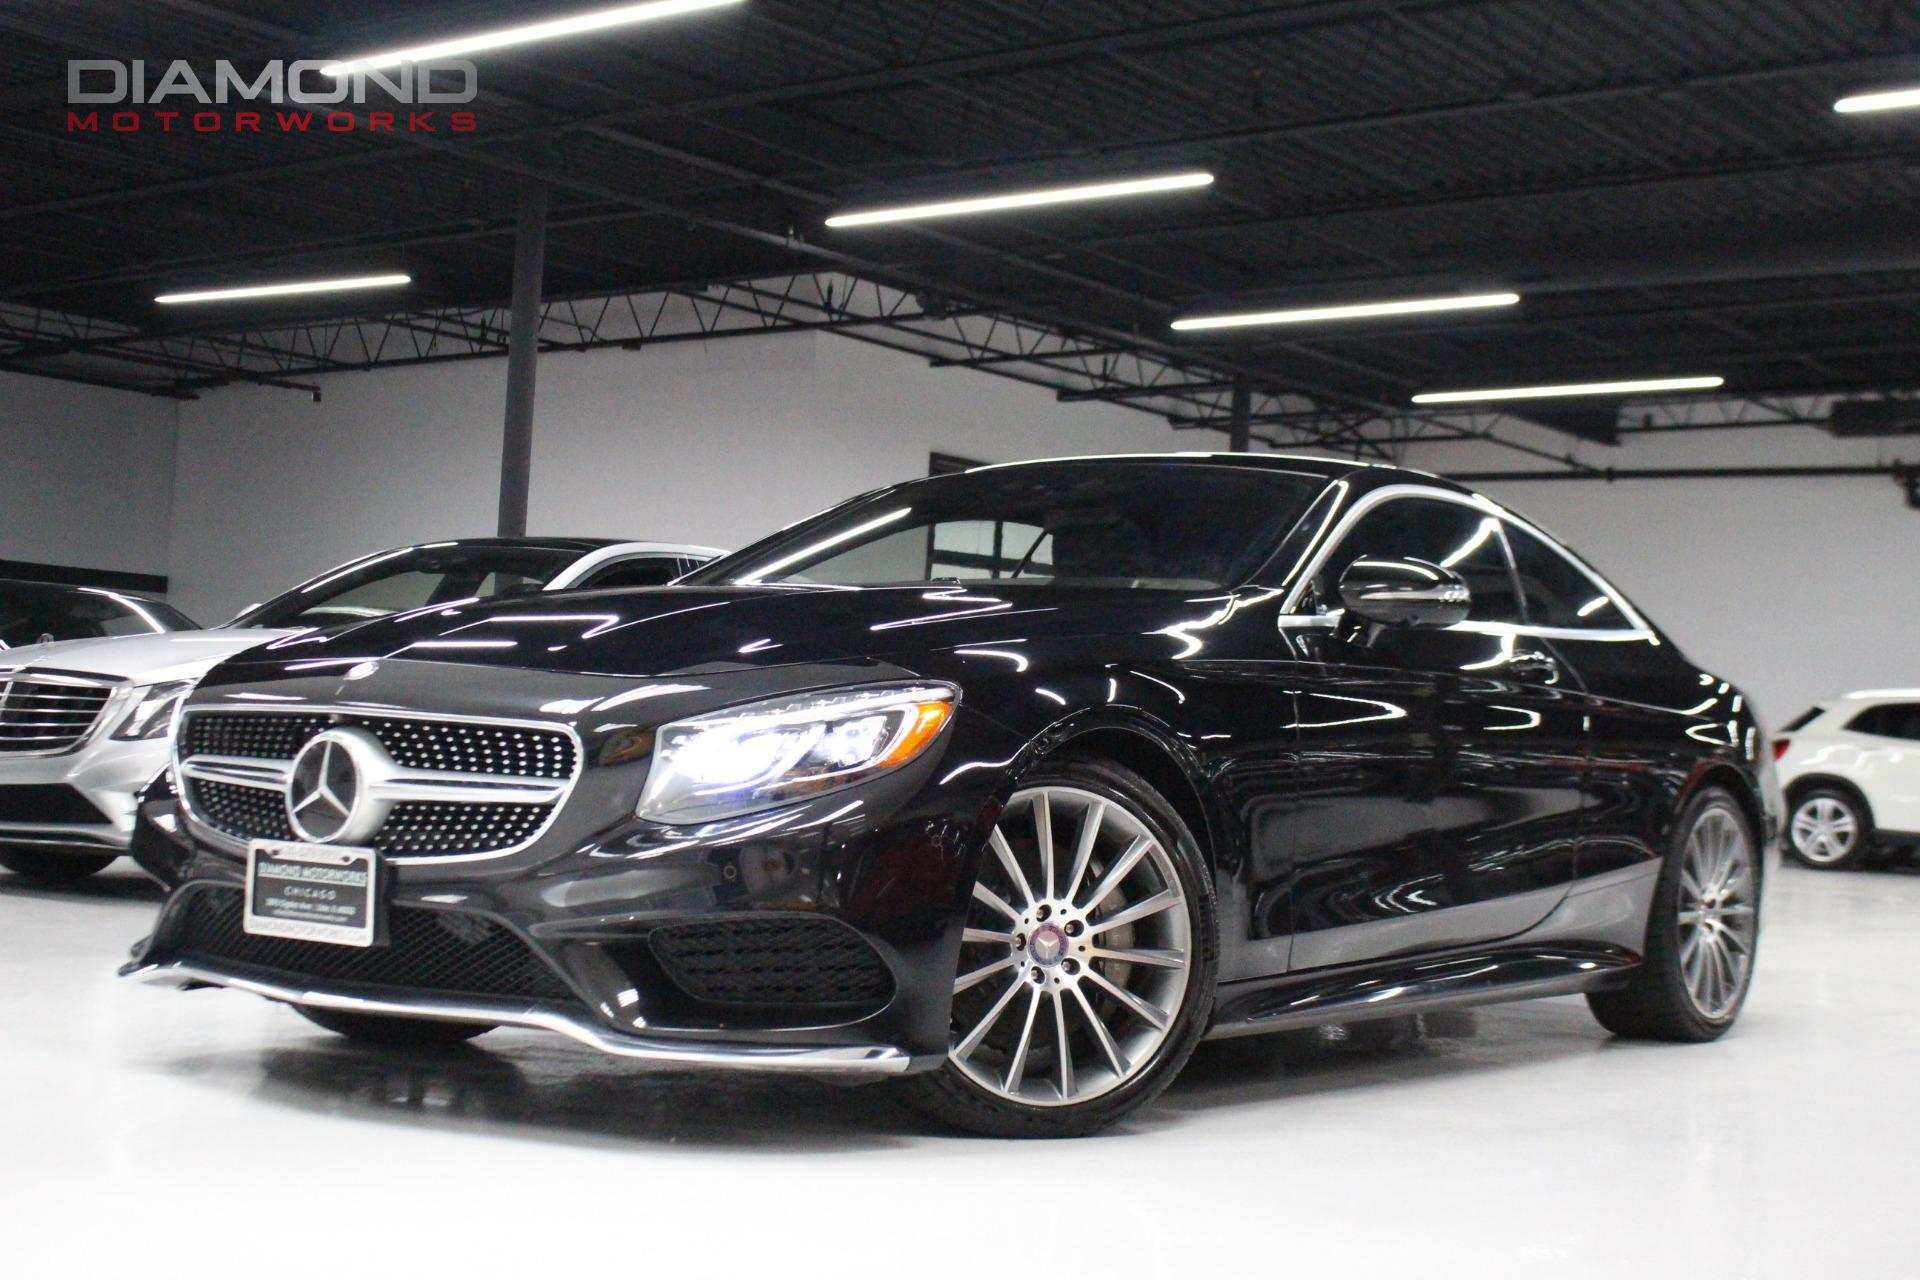 2015 mercedes benz s class s 550 4matic amg sport stock 002195 for sale near lisle il il. Black Bedroom Furniture Sets. Home Design Ideas